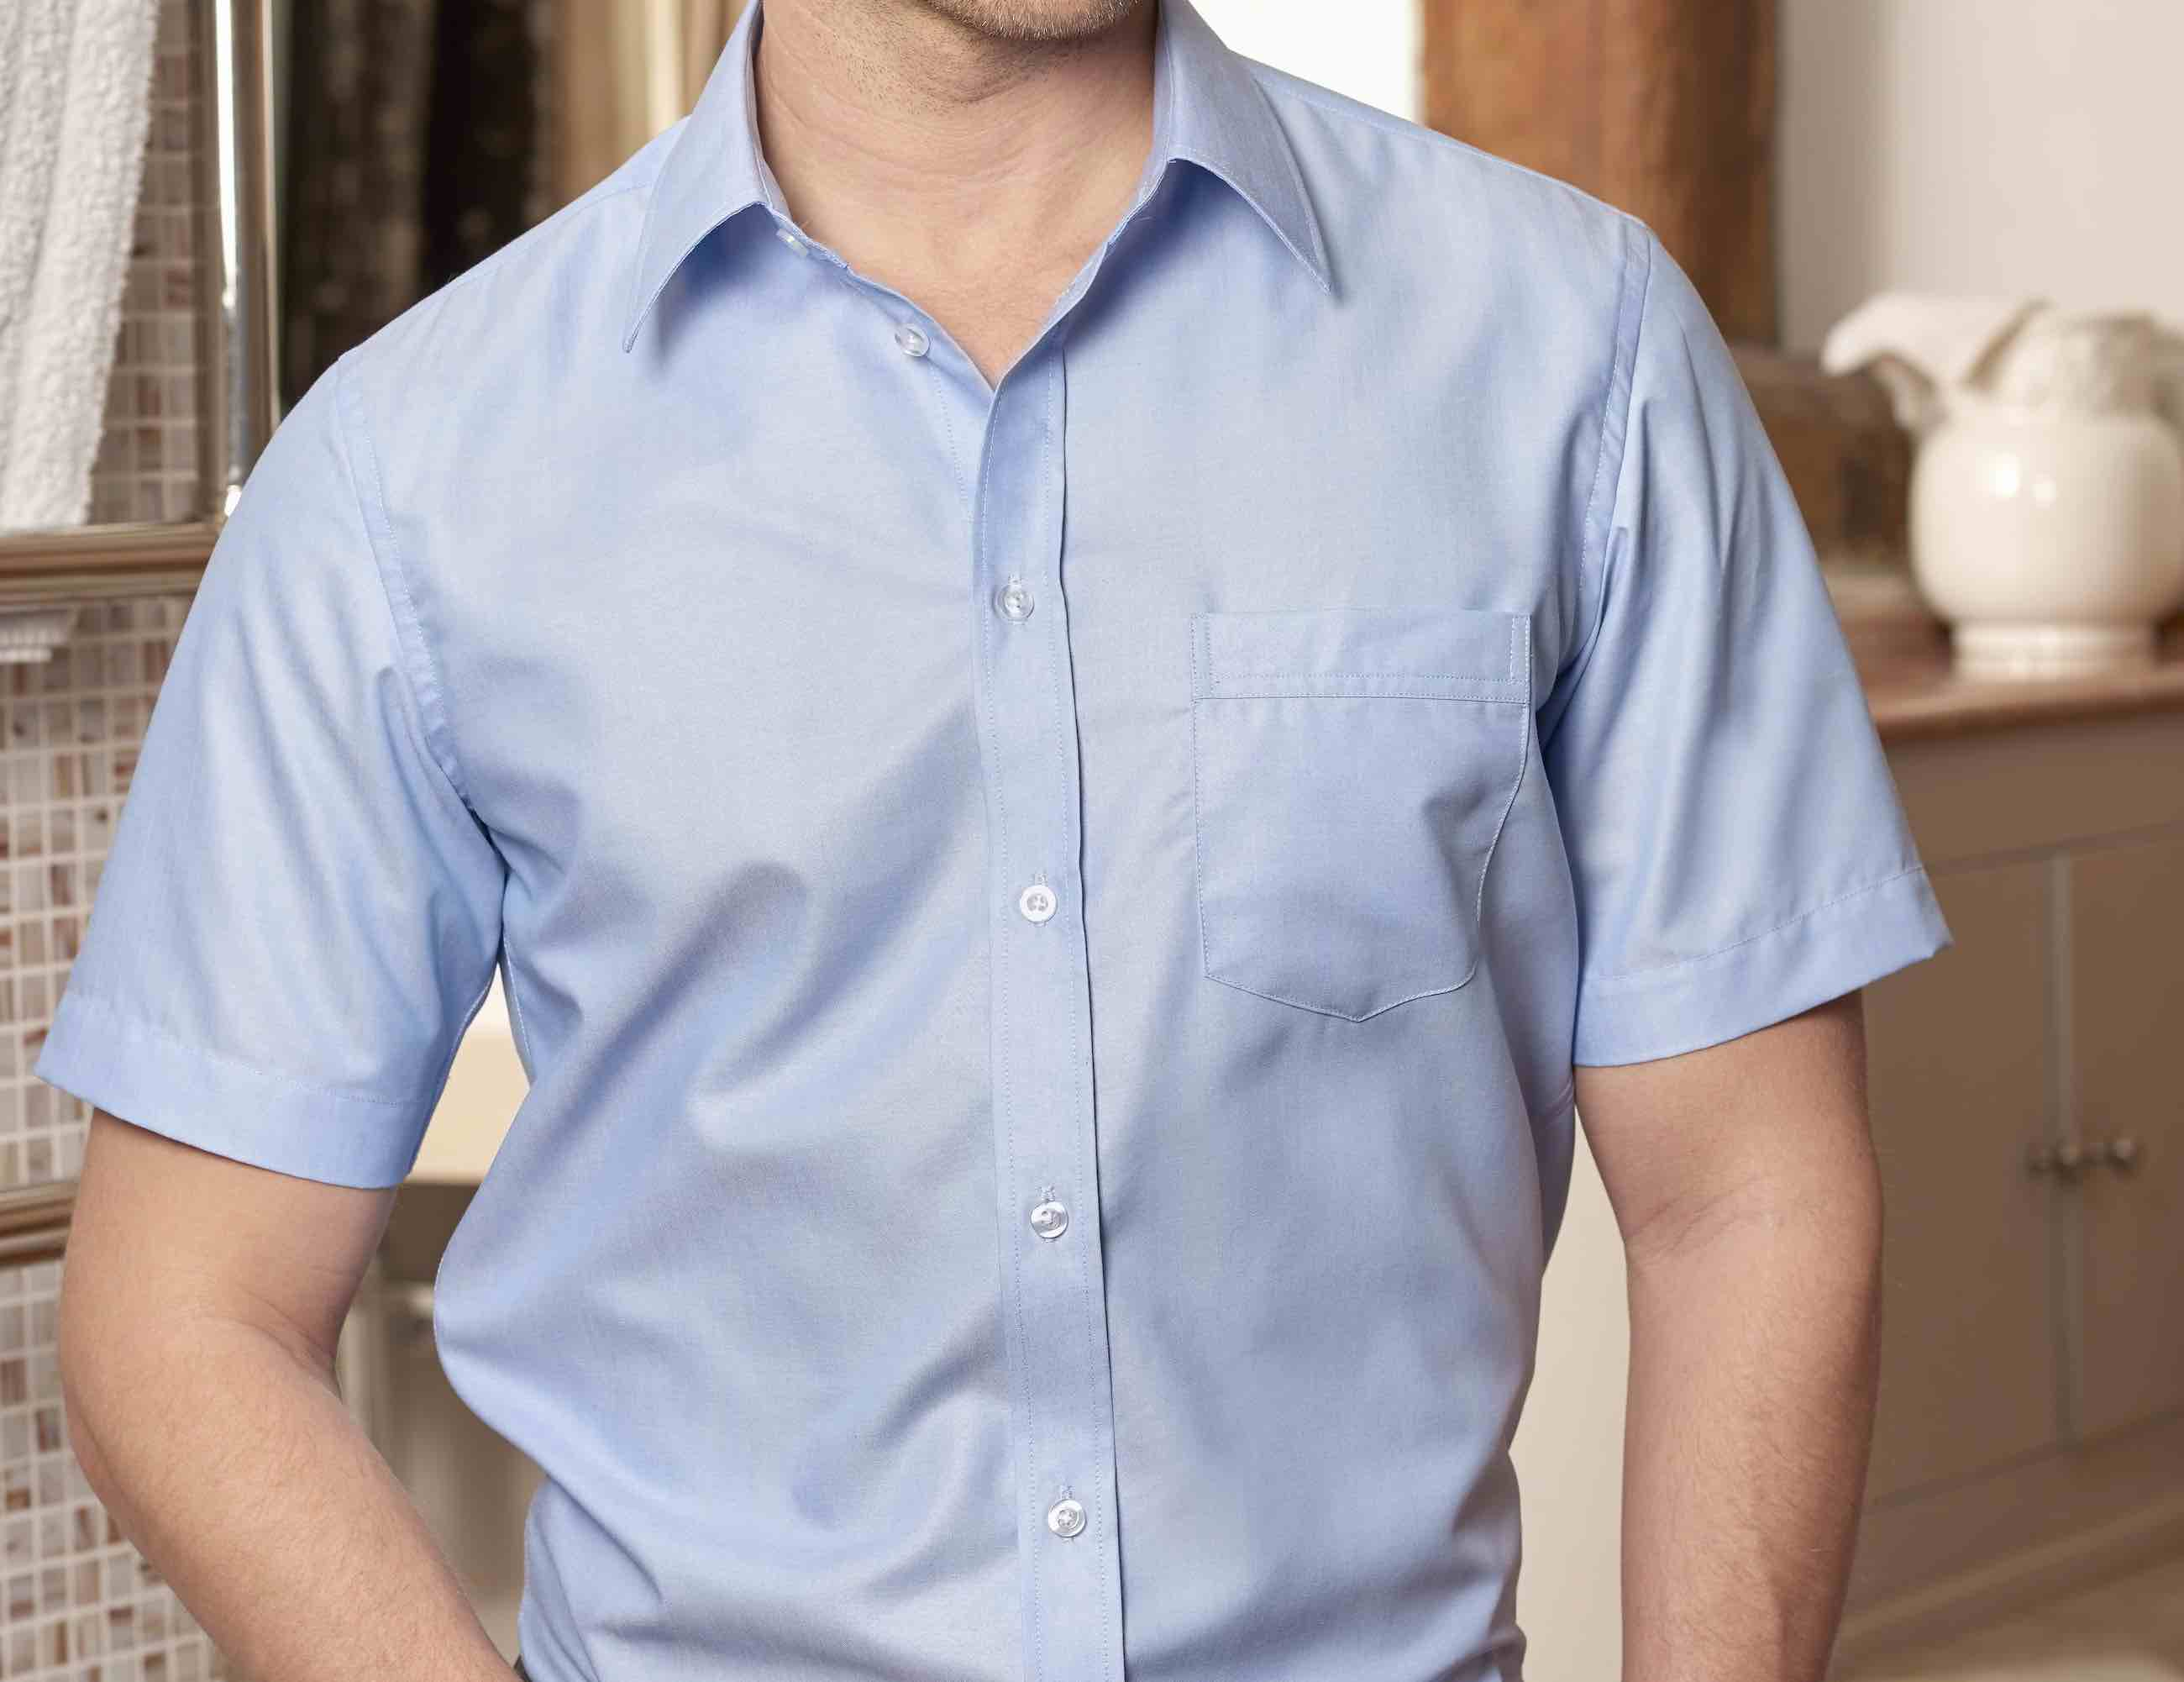 36209a451 These high-performance shirts are tailor-made to suit your needs